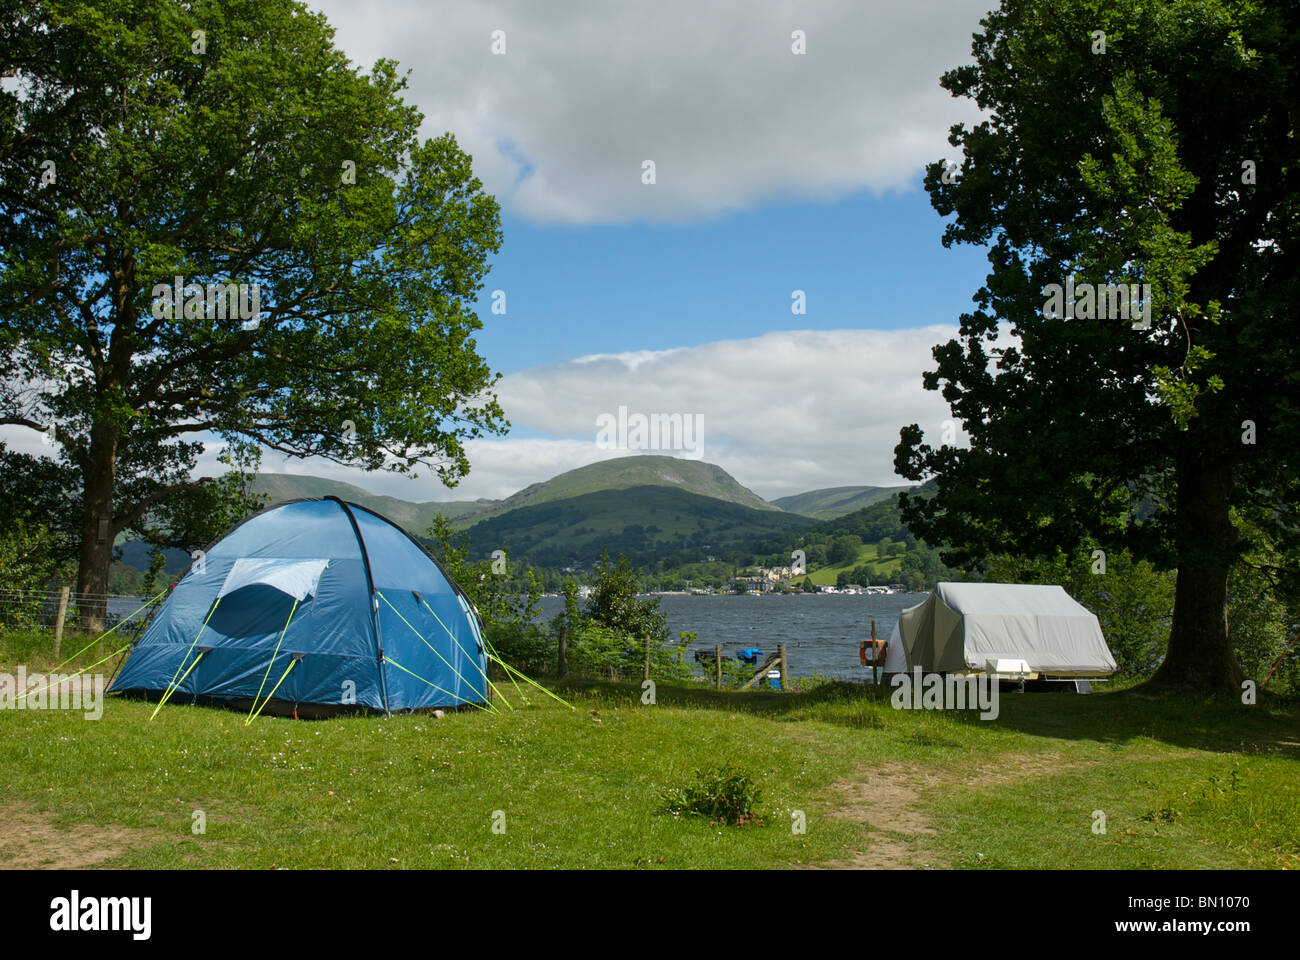 Lake Windermere and Low Wray Campsite, Lake District National Park, Cumbria, England UK - Stock Image